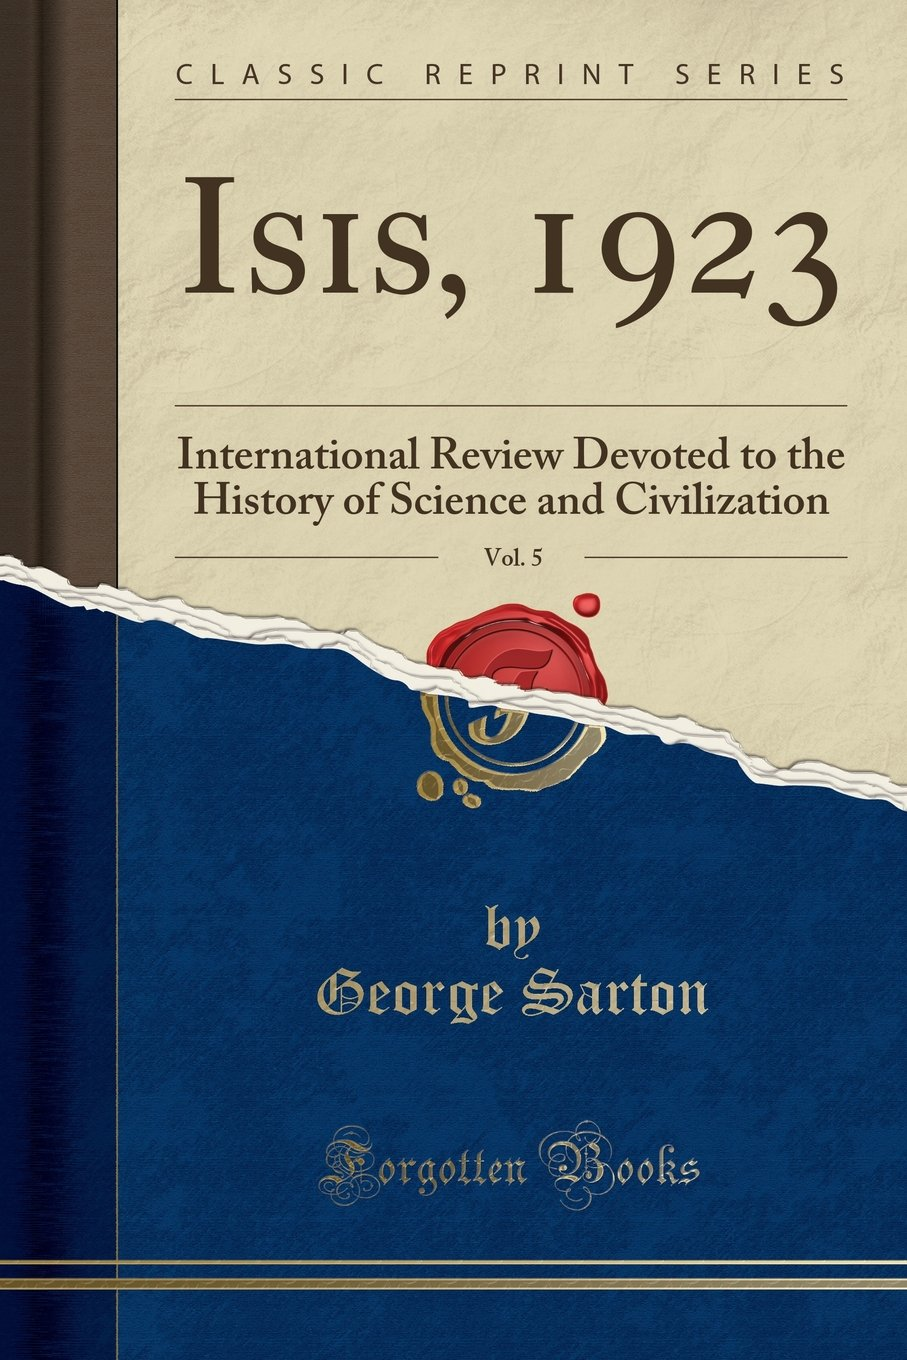 Isis, 1923, Vol. 5: International Review Devoted to the History of Science and Civilization (Classic Reprint) ebook